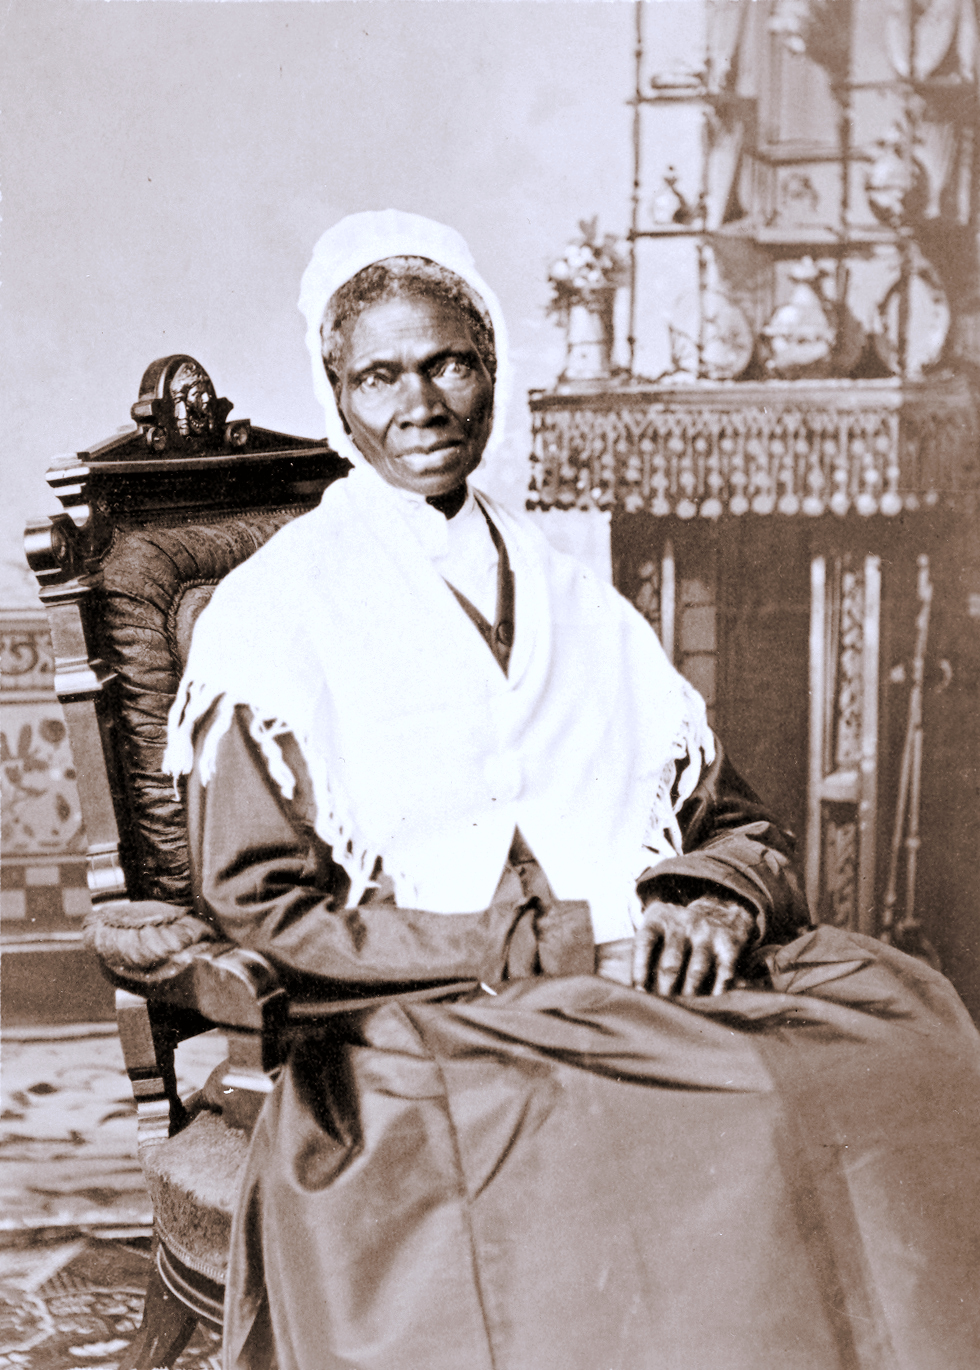 Born into slavery, Sojourner Truth became an itinerant Methodist preacher and advocated for freedom for the slave, justice for the poor and equality for women. Portrait of Sojourner Truth from the National Portrait Gallery, Smithsonian Institution, courtesy of Wikimedia Commons.